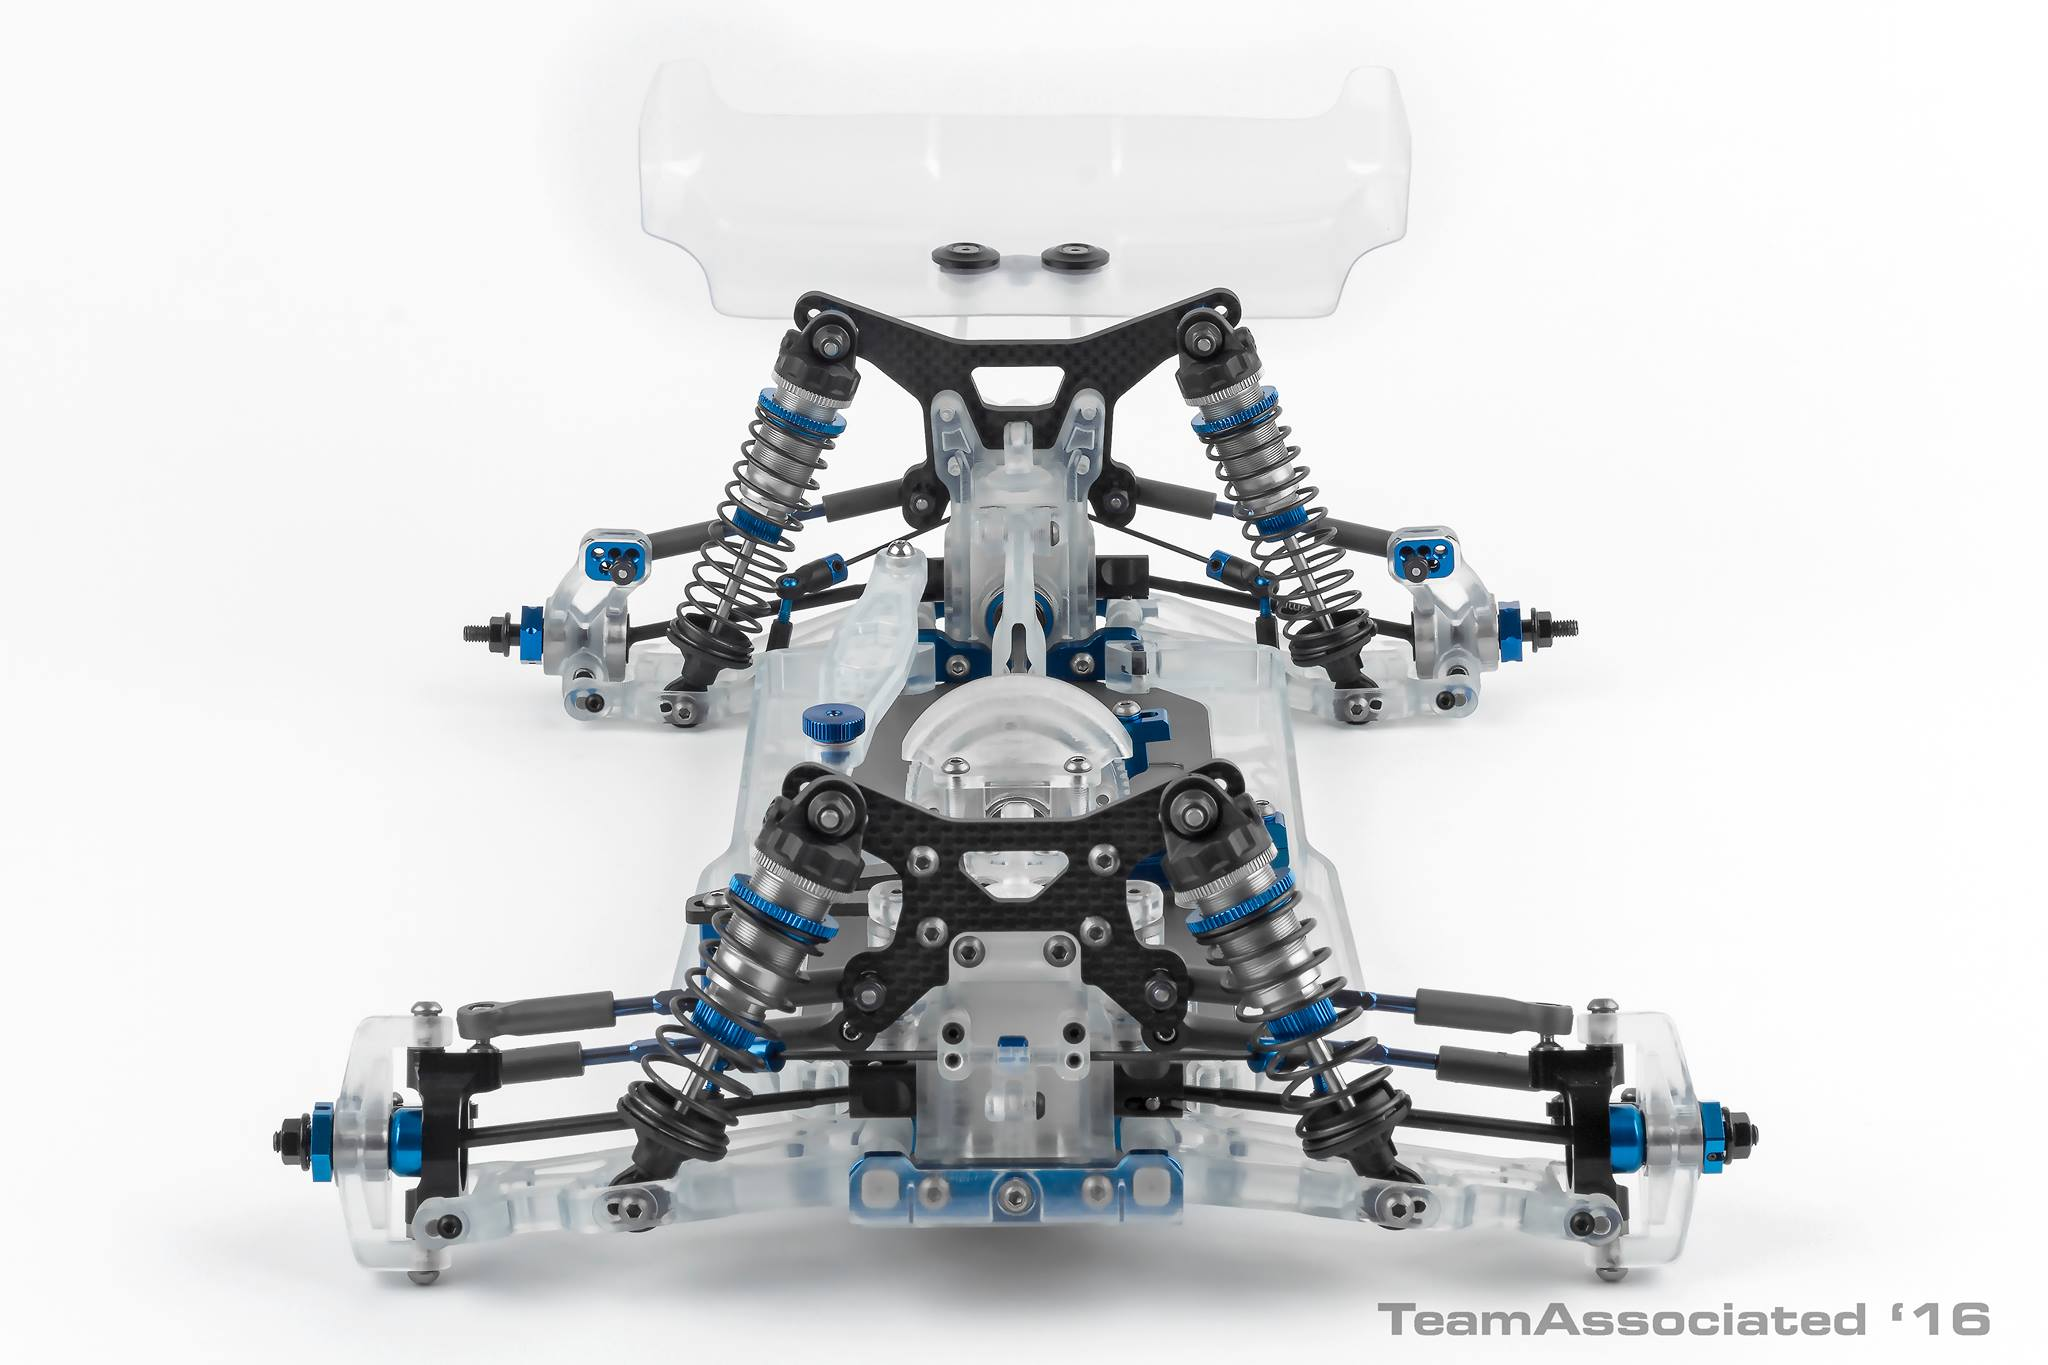 The photo ties to her what we ve discerned from the previous images with long travel front and rear suspension tall carbon fiber shock towers